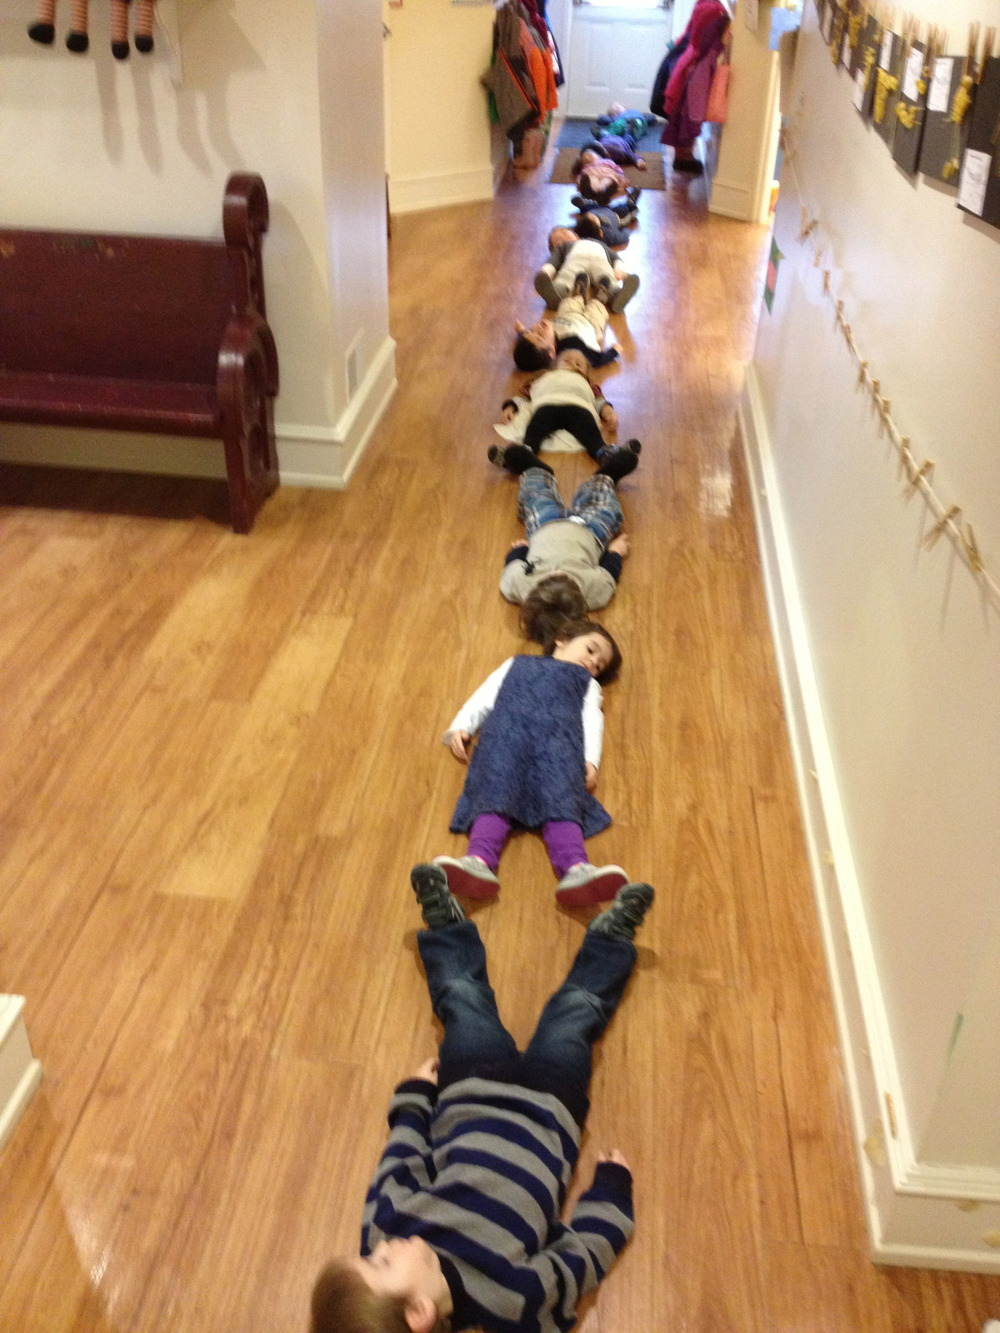 using our bodies to measure